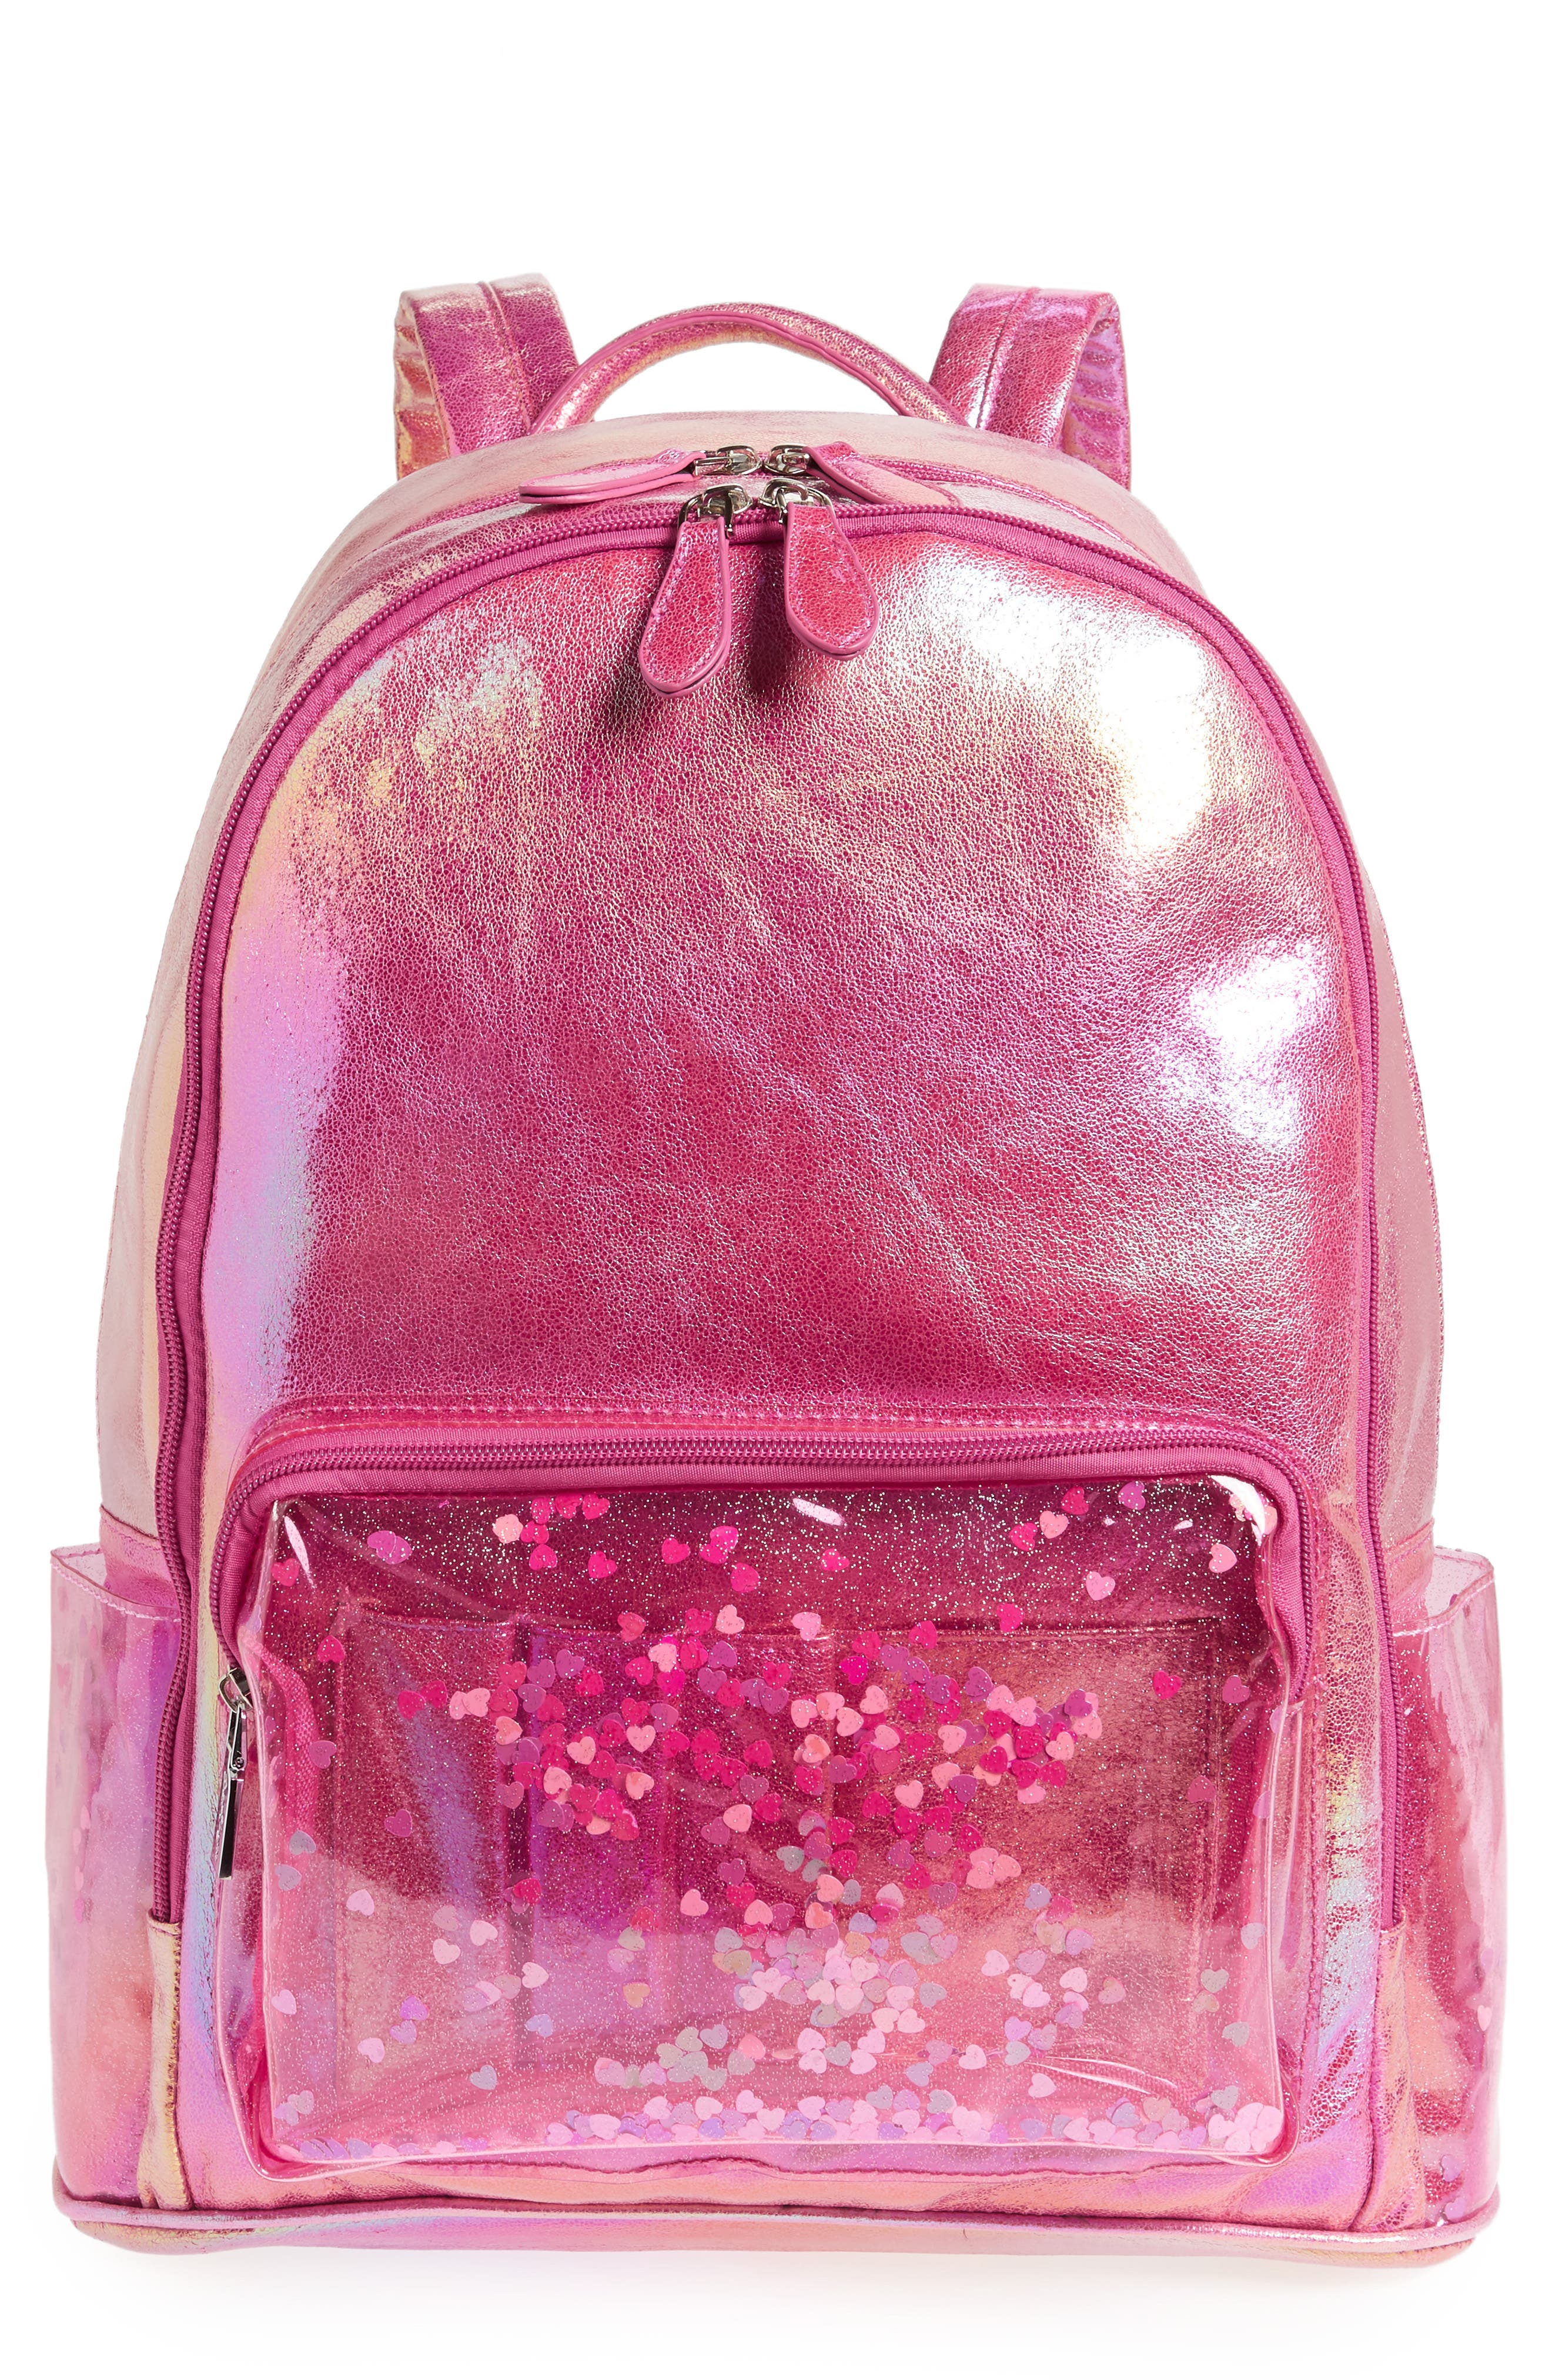 Heart Confetti Holographic Backpack,                             Main thumbnail 1, color,                             Pink